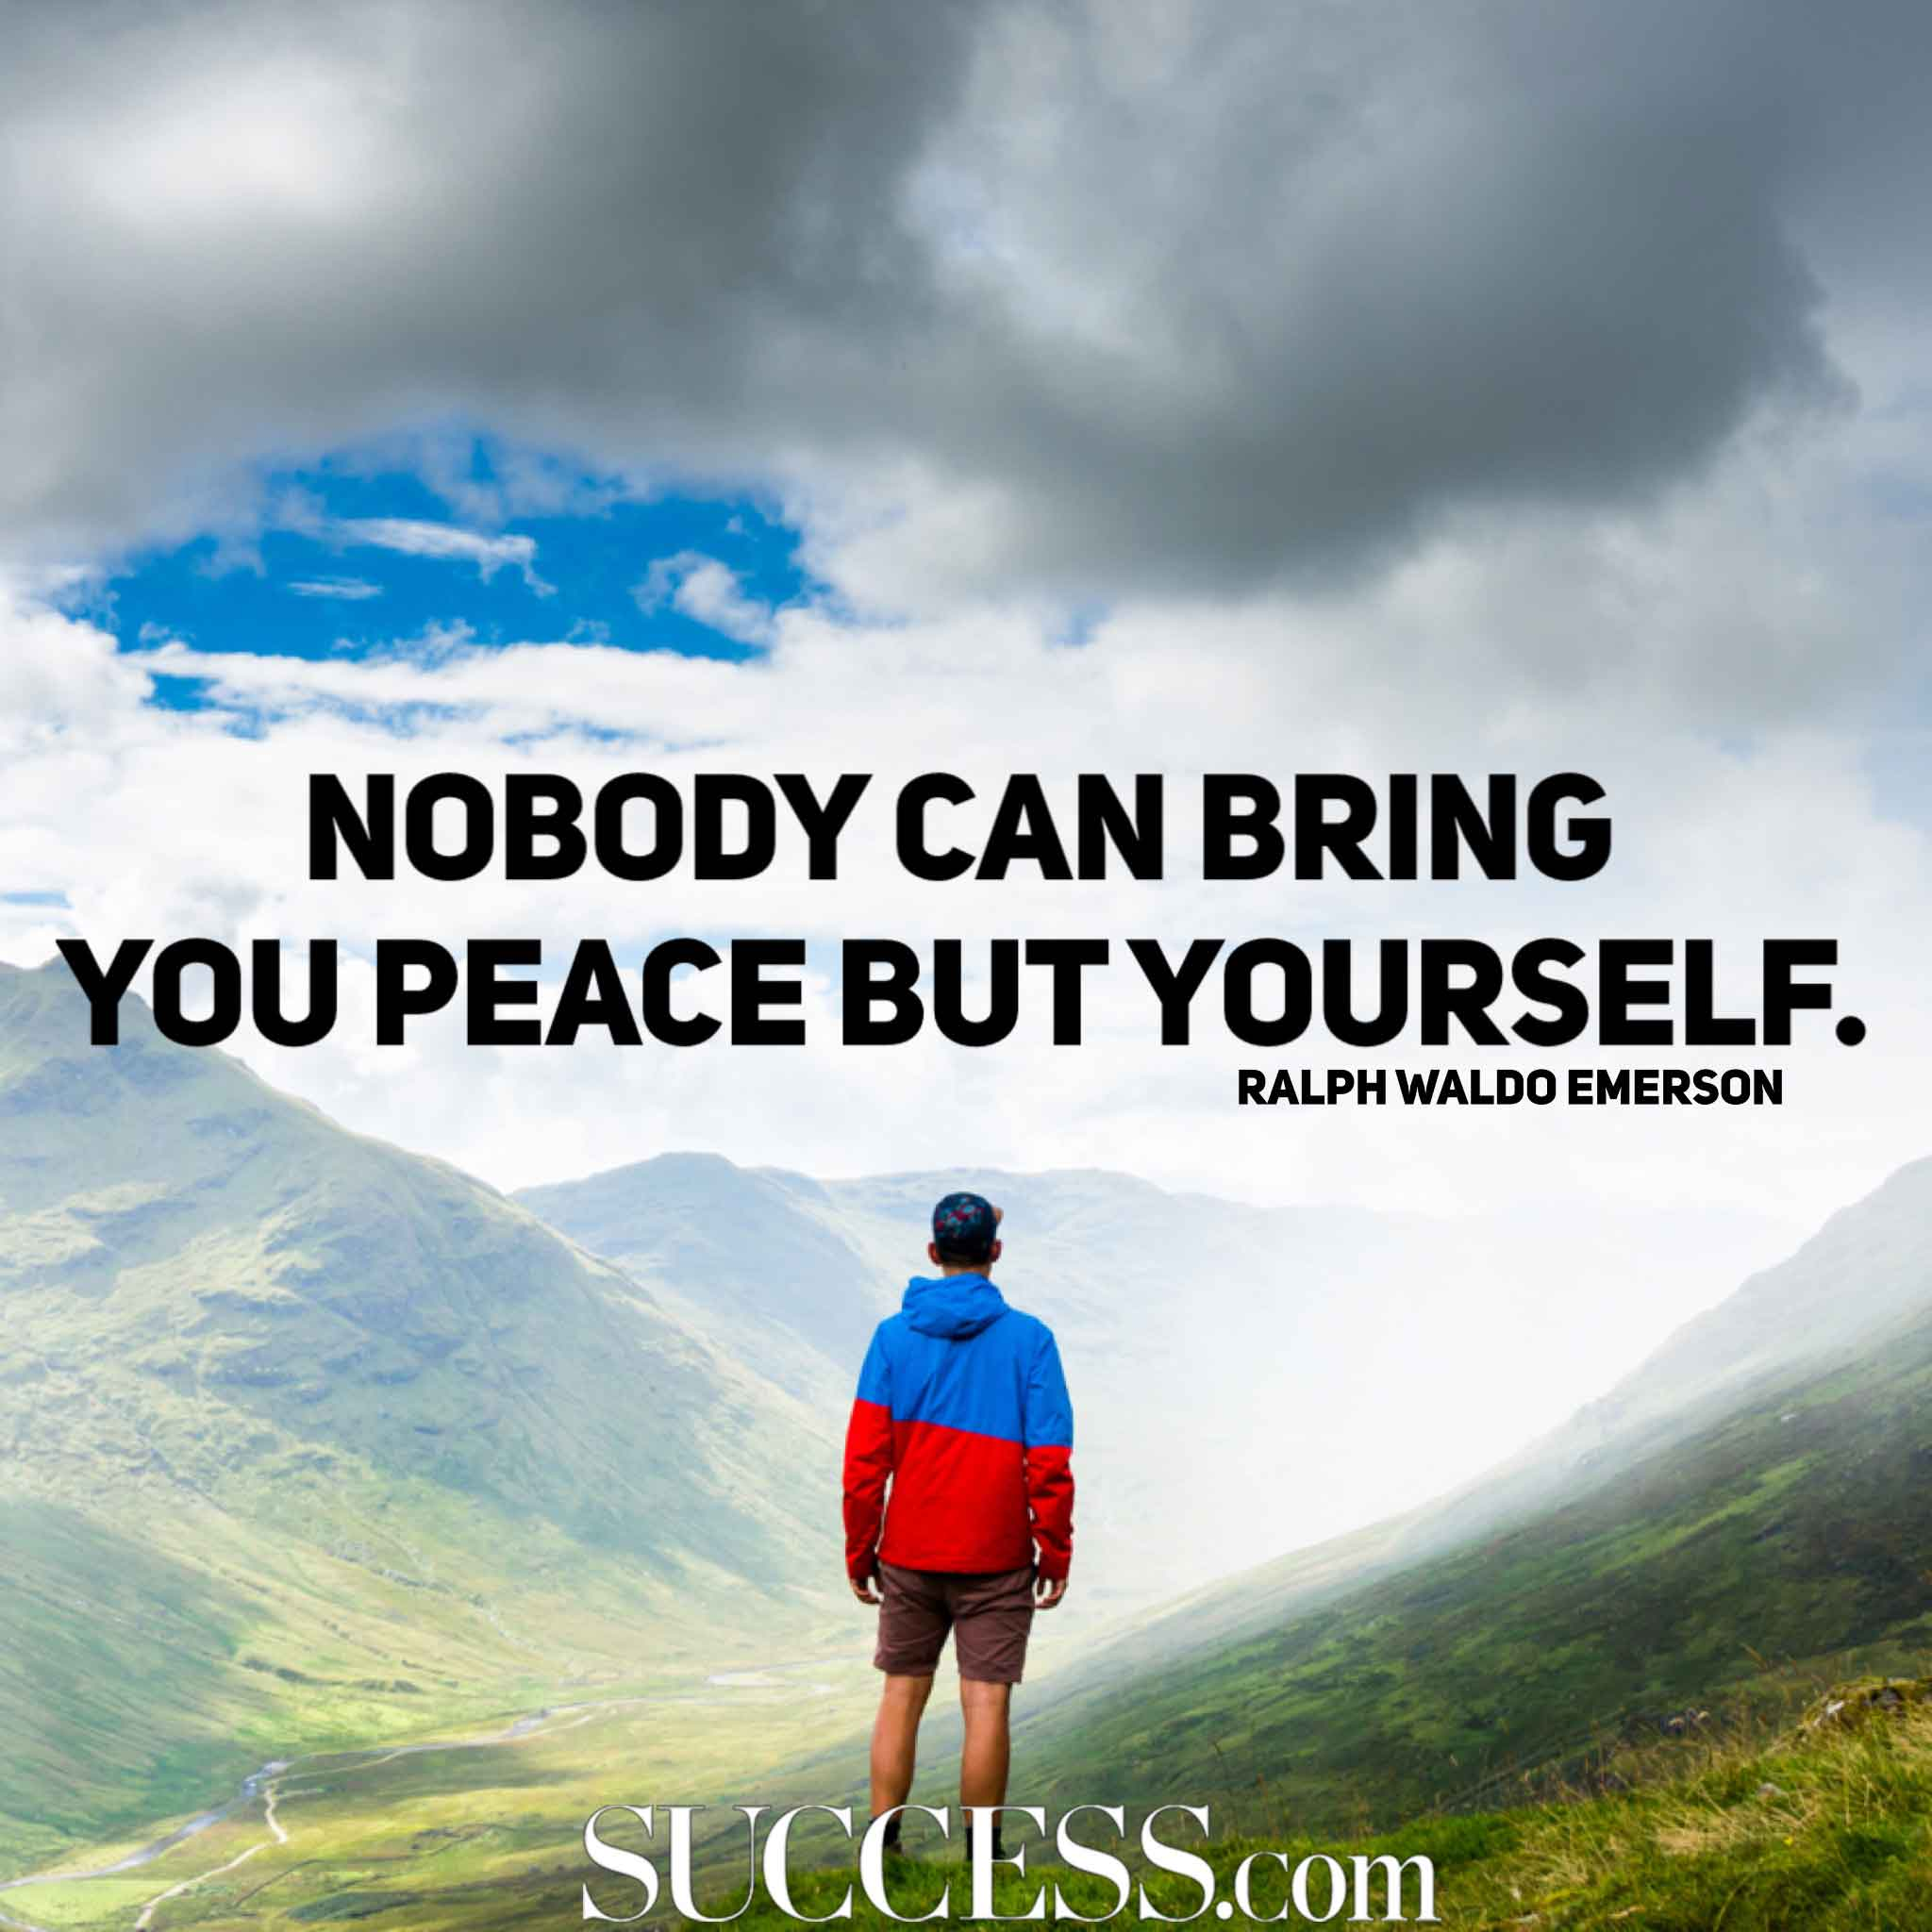 17 Quotes About Finding Inner Peace